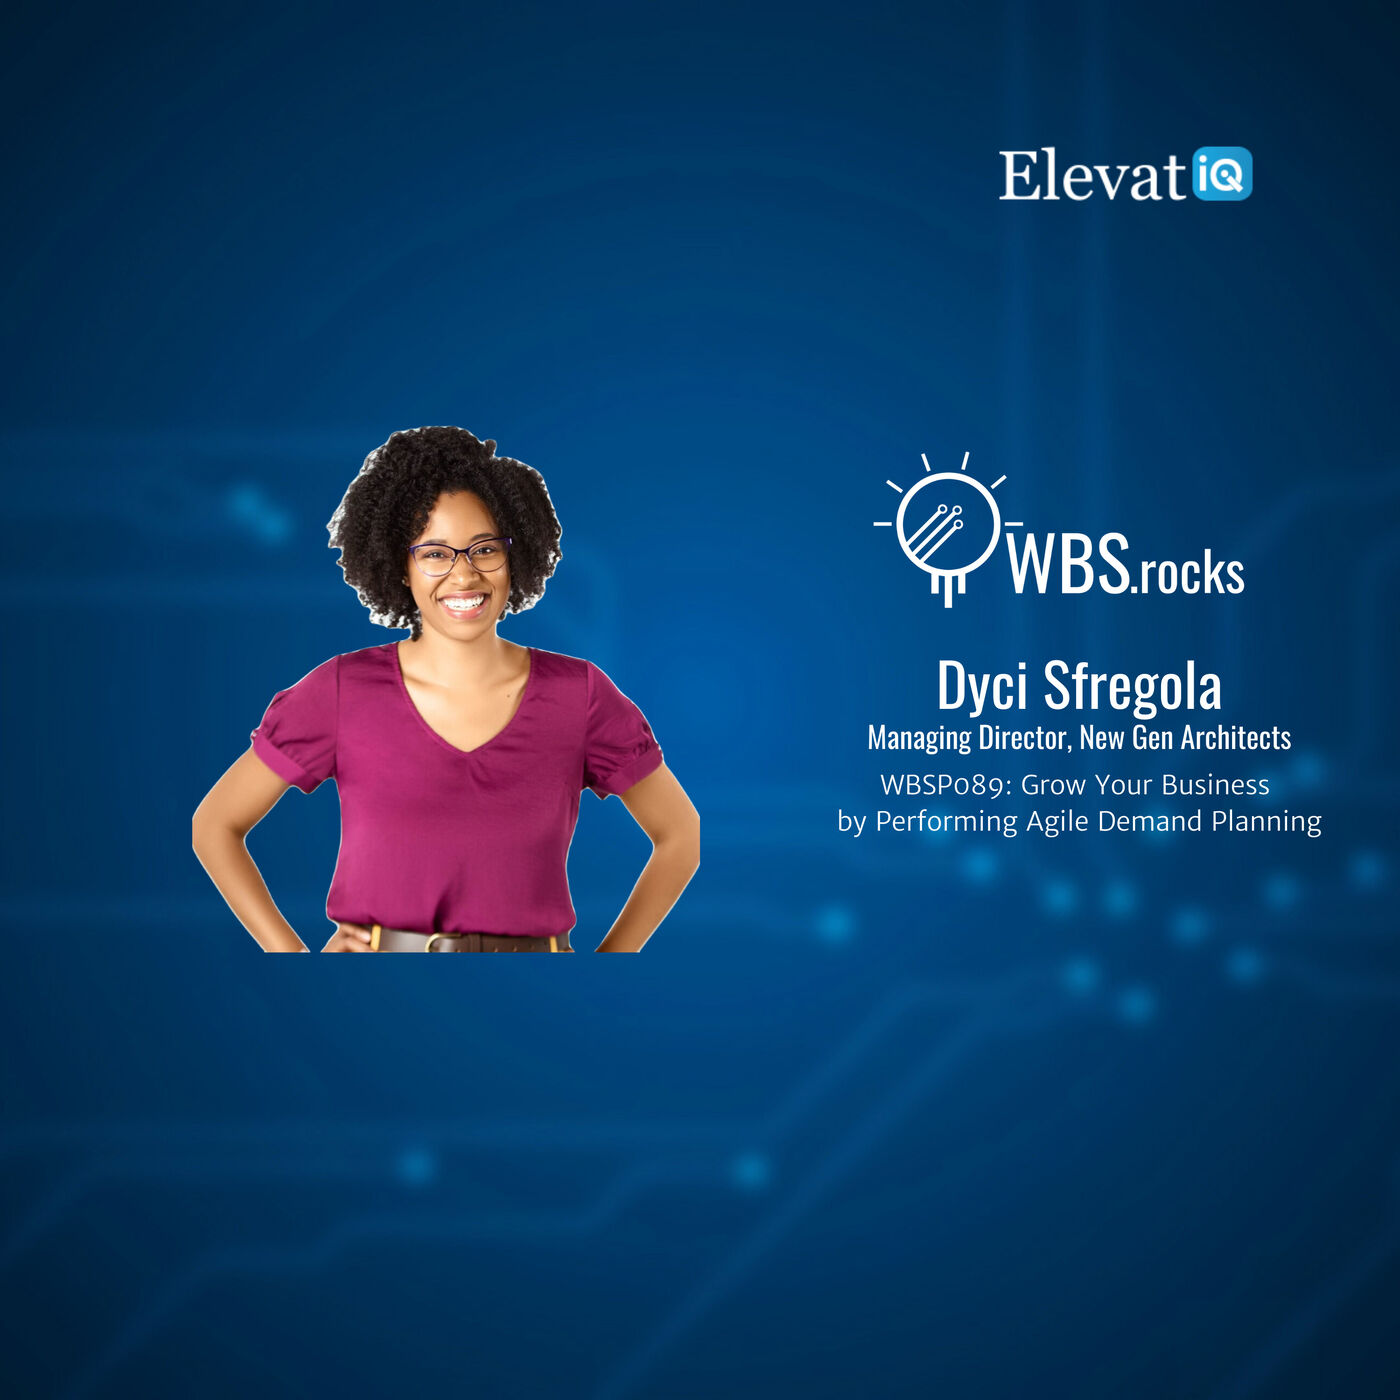 WBSP089: Grow Your Business by Performing Agile Demand Planning w/ Dyci Sfregola